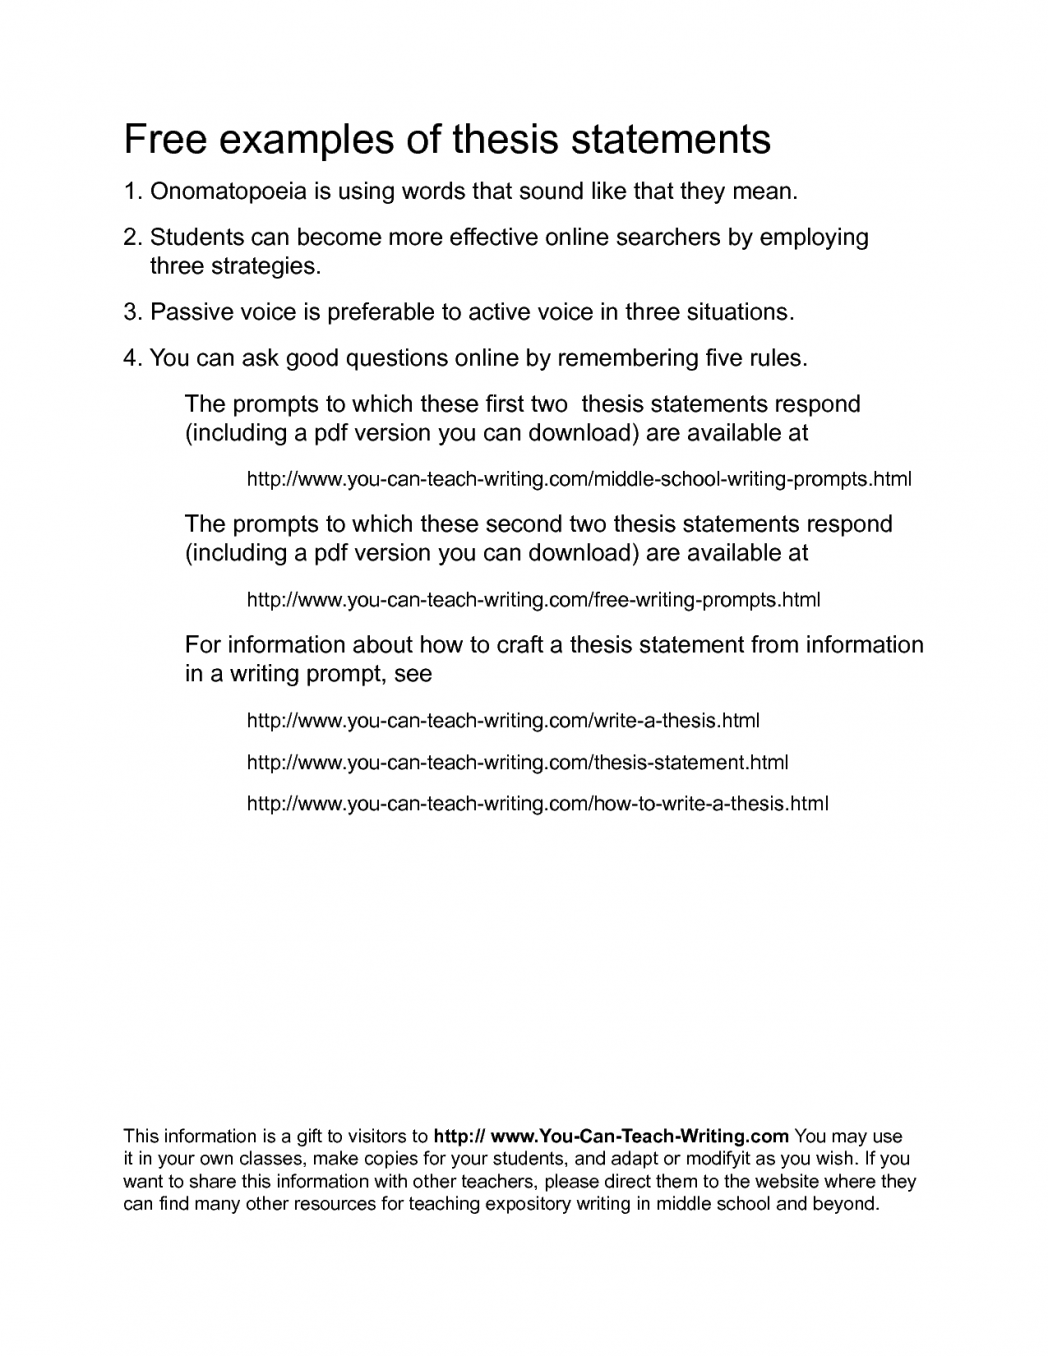 009 Essay Example Goodersuasive Topics For Middle School Thesis Abouturpose Of Statement Template Wwe Speech Uniforms Issues Education Rules Uniform Argumentative High 1048x1356 What Is The Beautiful Purpose A Persuasive Are Two Purposes Writing Brainly Format Tone Full